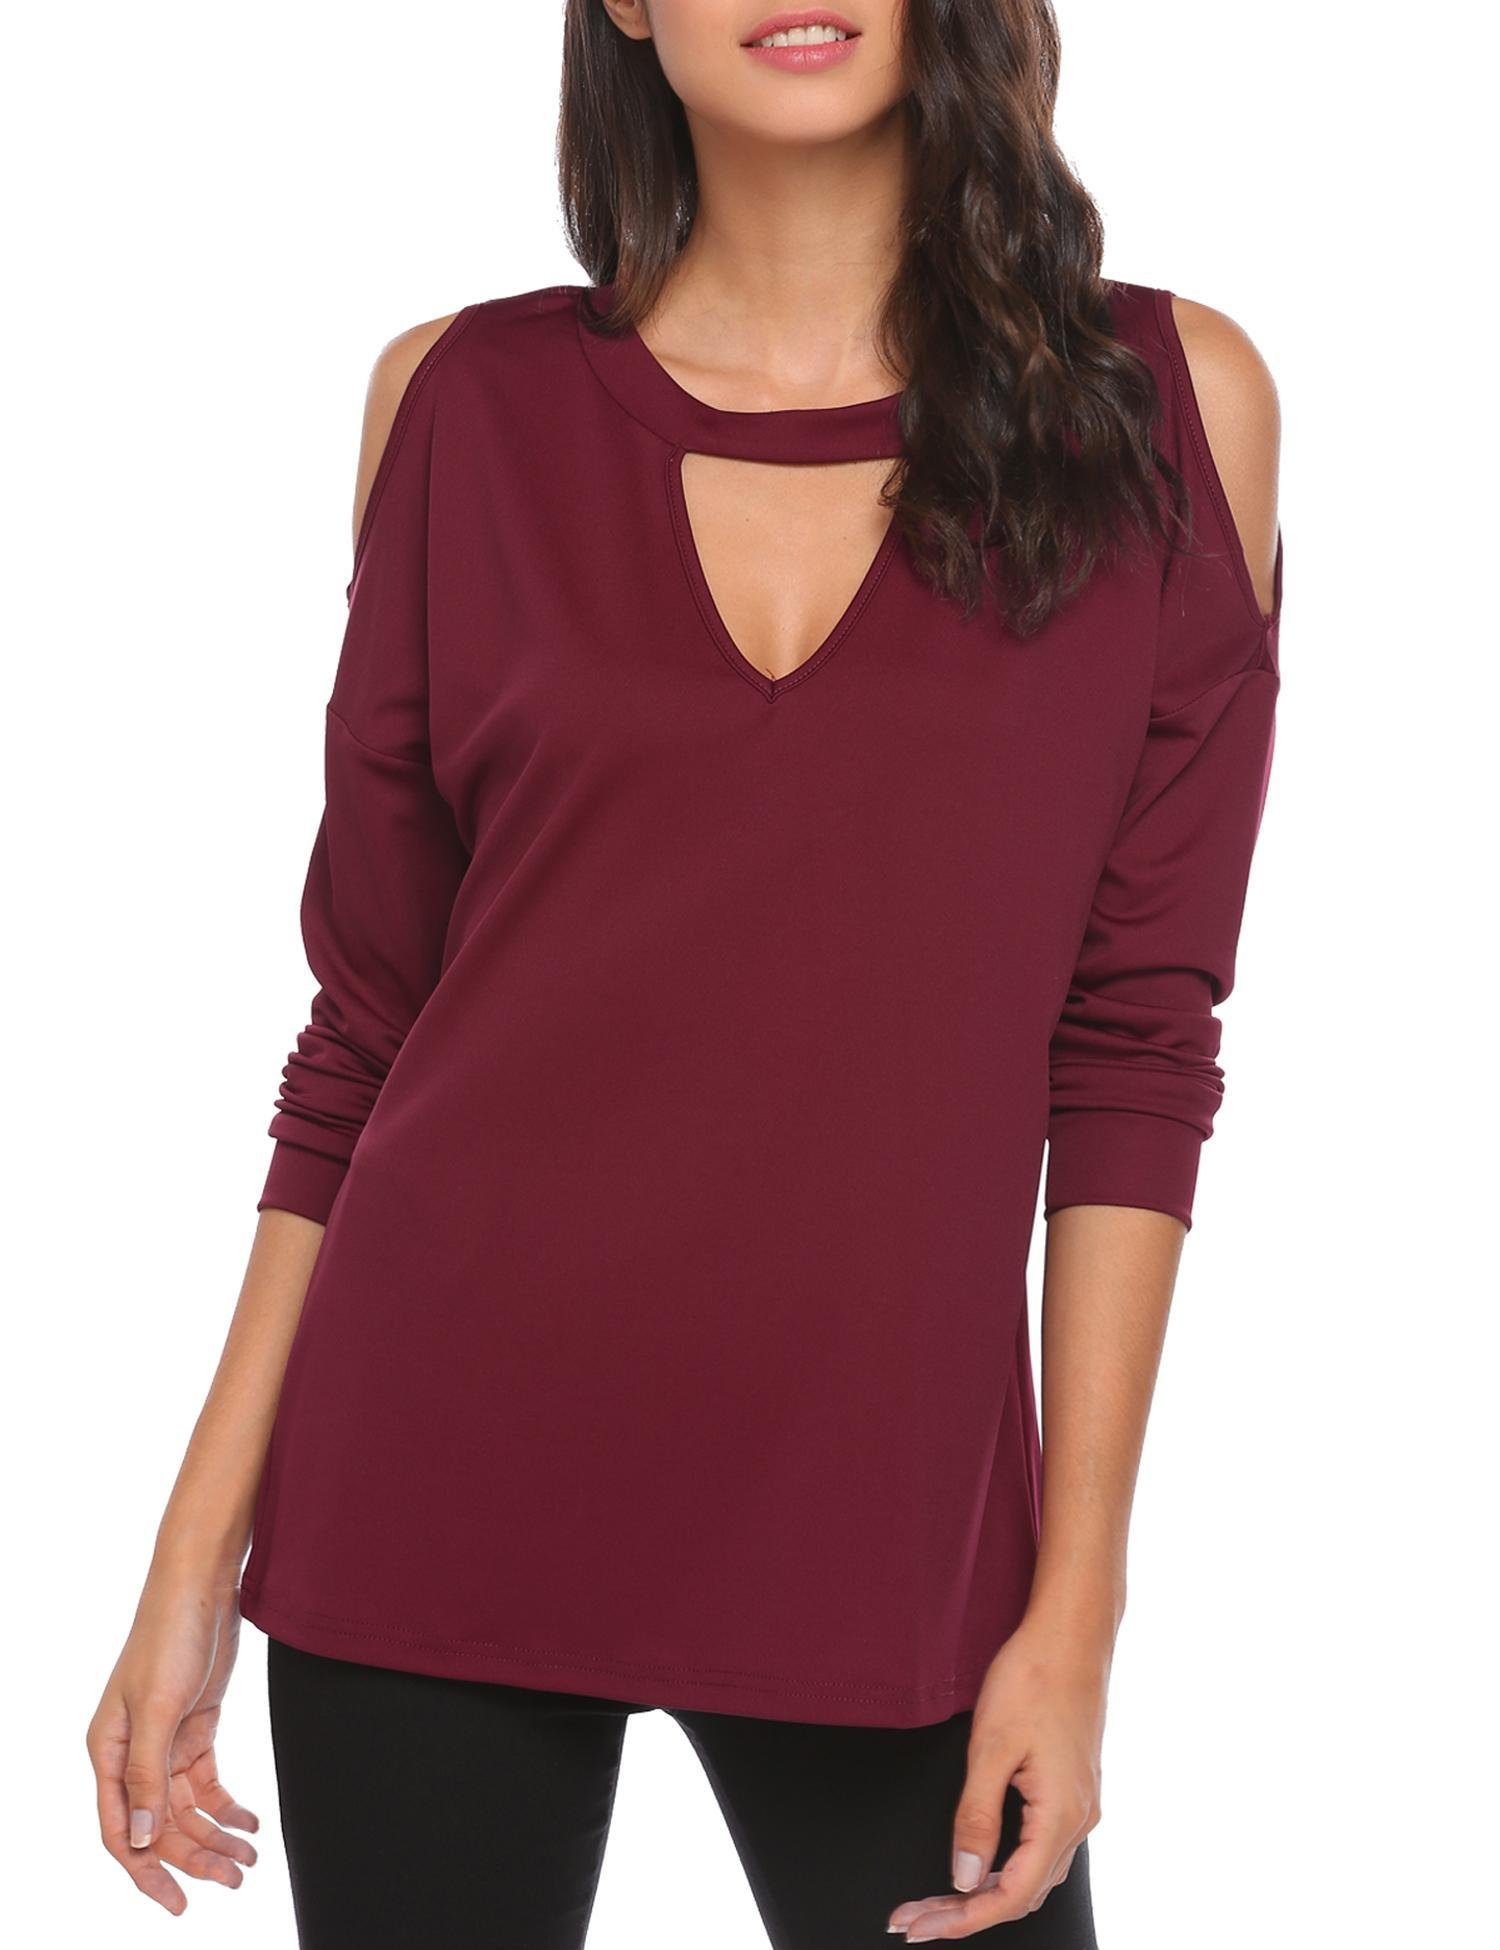 ThinIce Women's Long Sleeve Crew Neck Blouse Open Shoulder Pullover Tops (Wine Red, X-Large)